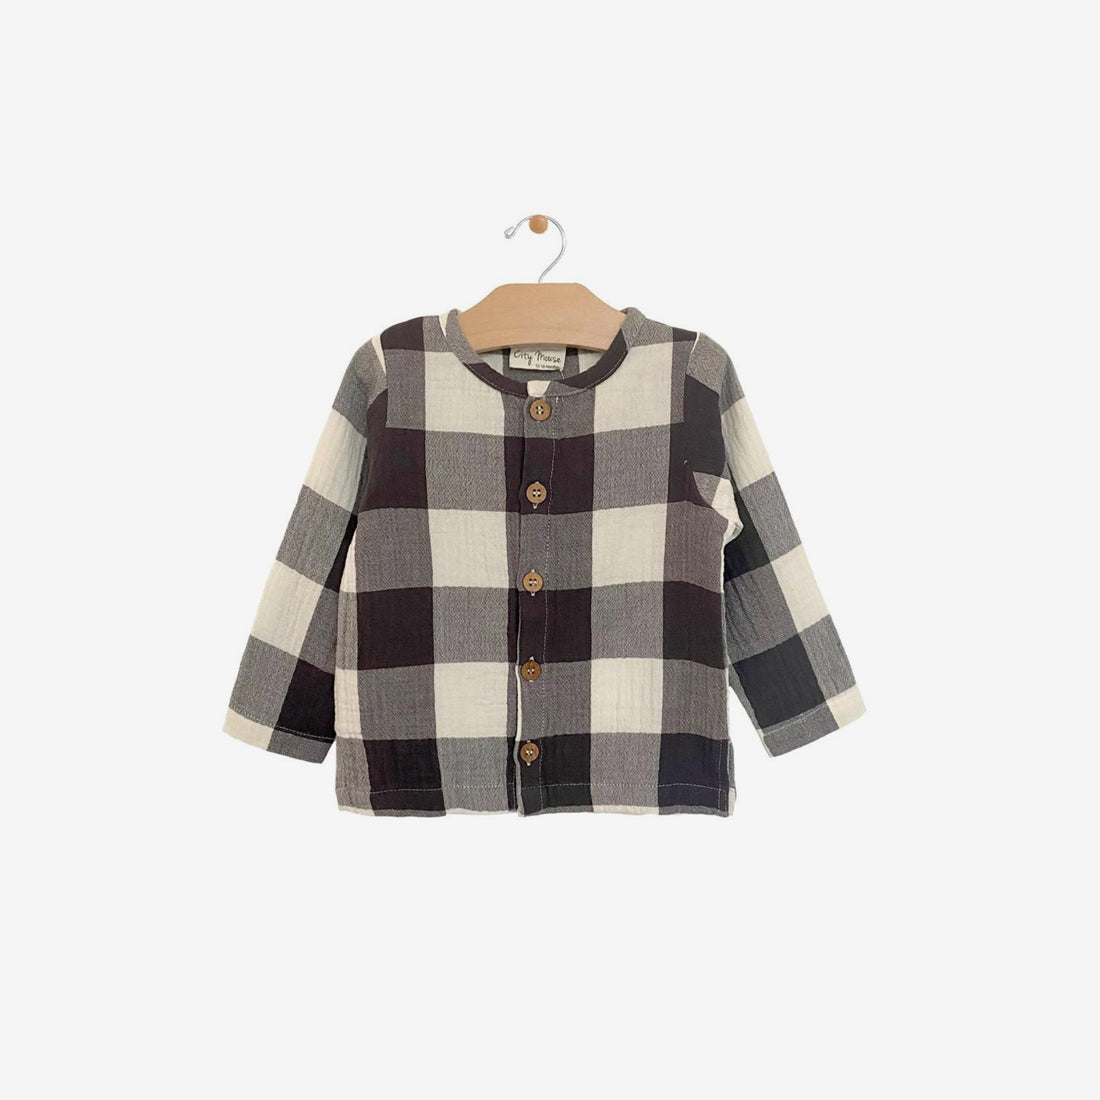 Organic Crinkle Cotton Button-Up Shirt - Buffalo Check